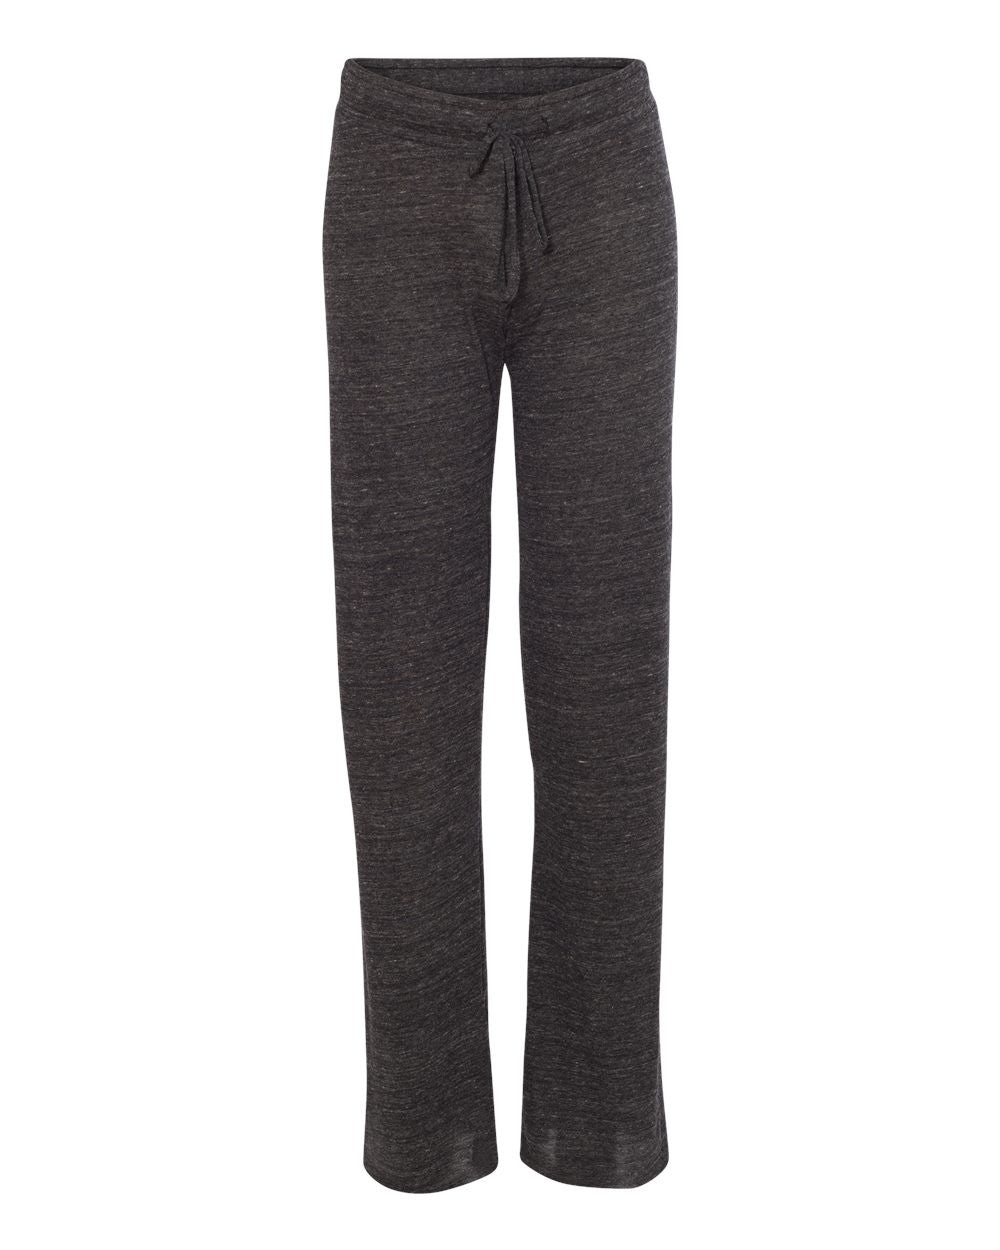 Women's Alternative Eco-Jersey Lounge Pants - Discountedrack.com